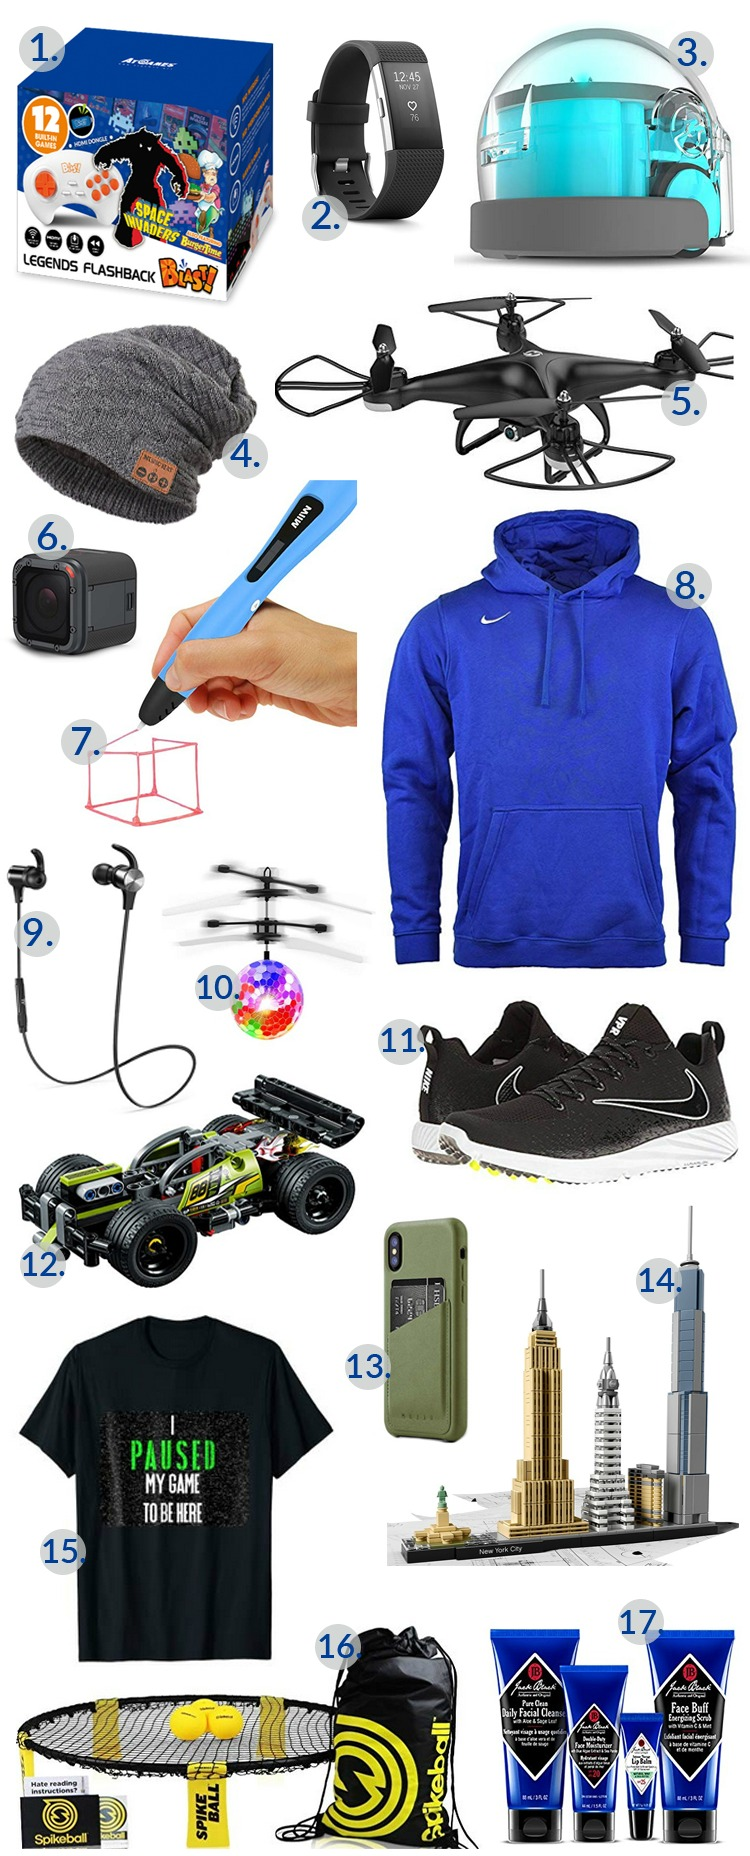 17 Top Gift Ideas for Teen Boys on Your Shopping List